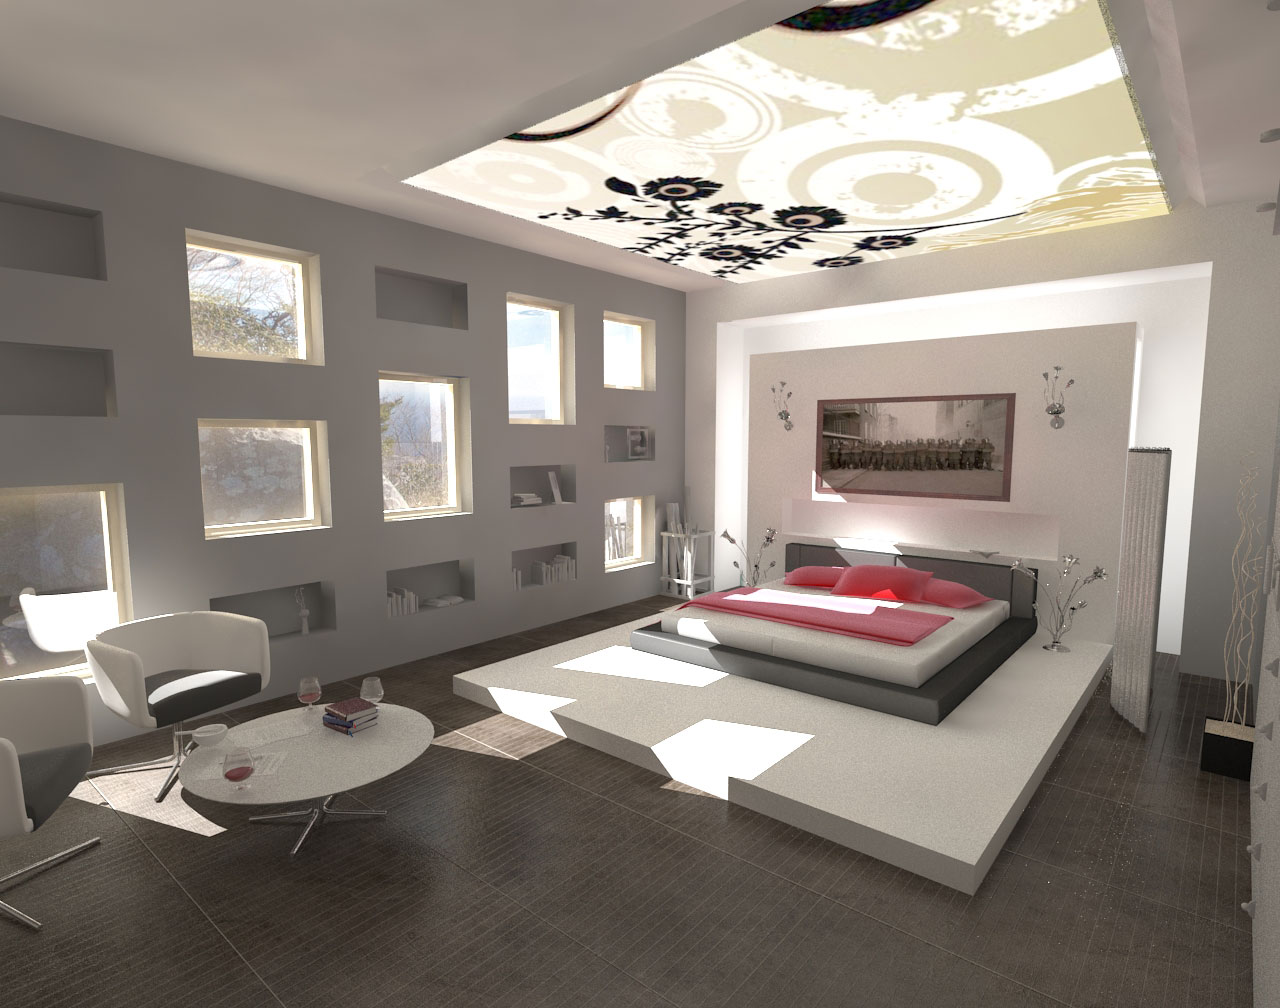 Decorations minimalist design modern bedroom interior for Interior designs for bedrooms ideas